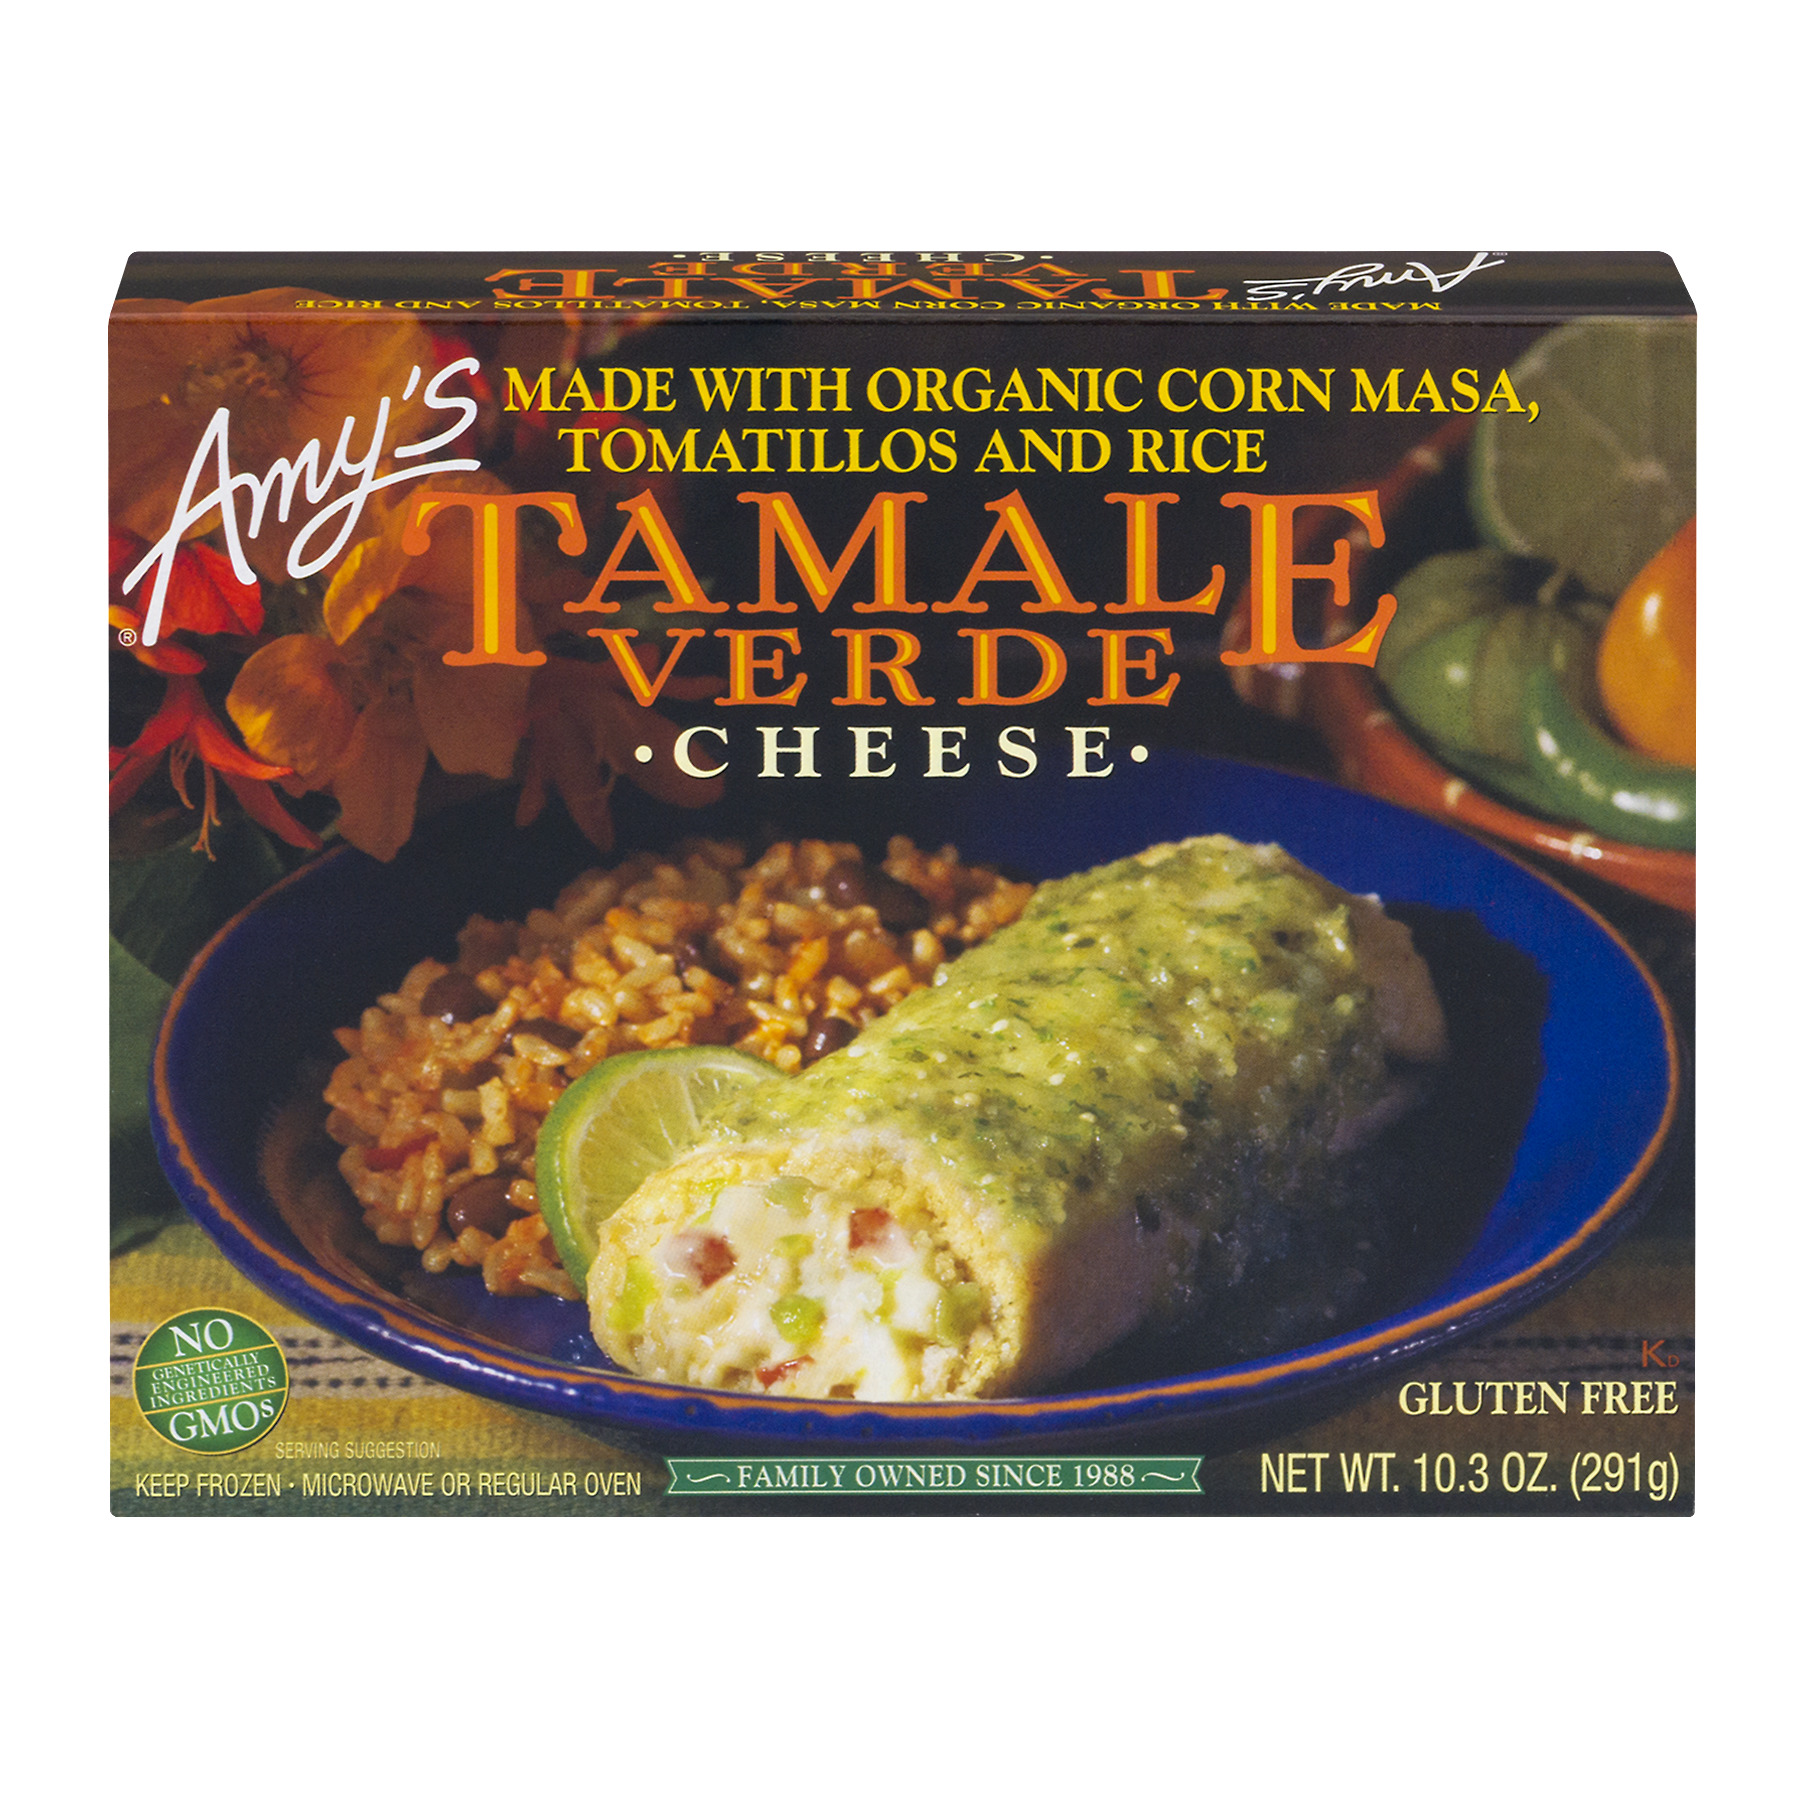 Amy's Tamale Verde Cheese, 10.3 OZ